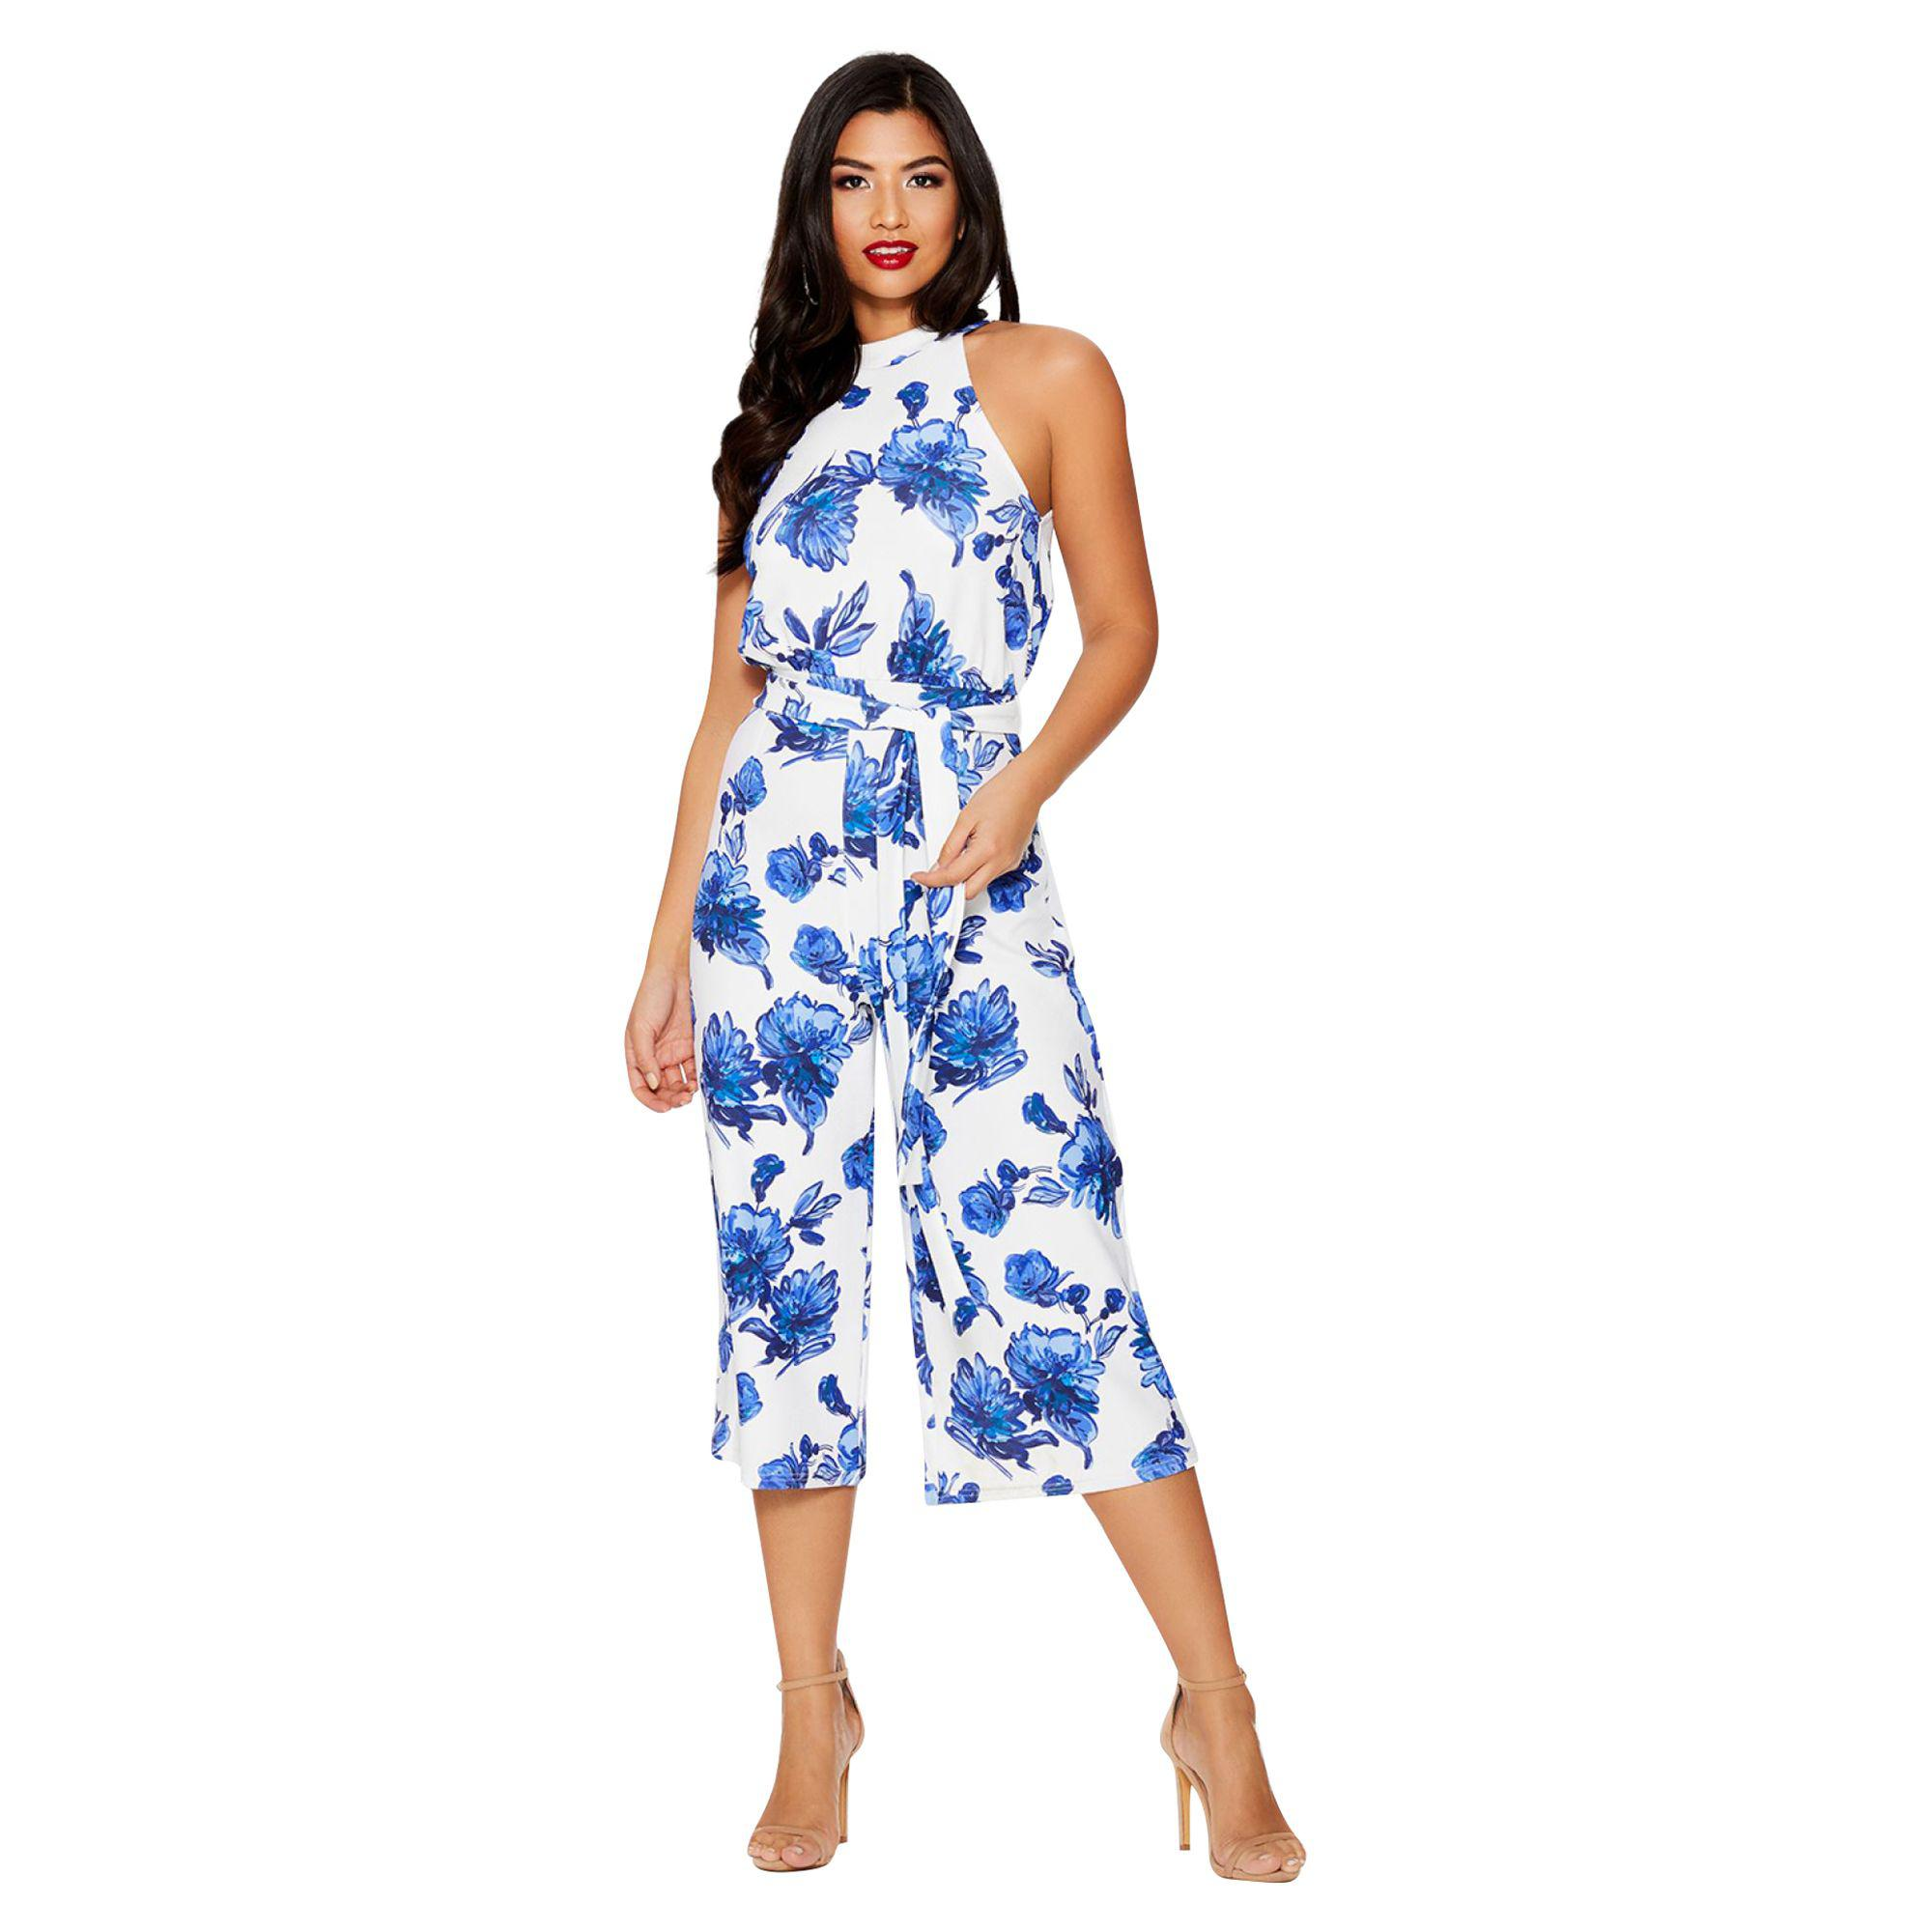 e62f19f61f6 Quiz Blue And White Floral Print Jumpsuit in Blue - Lyst